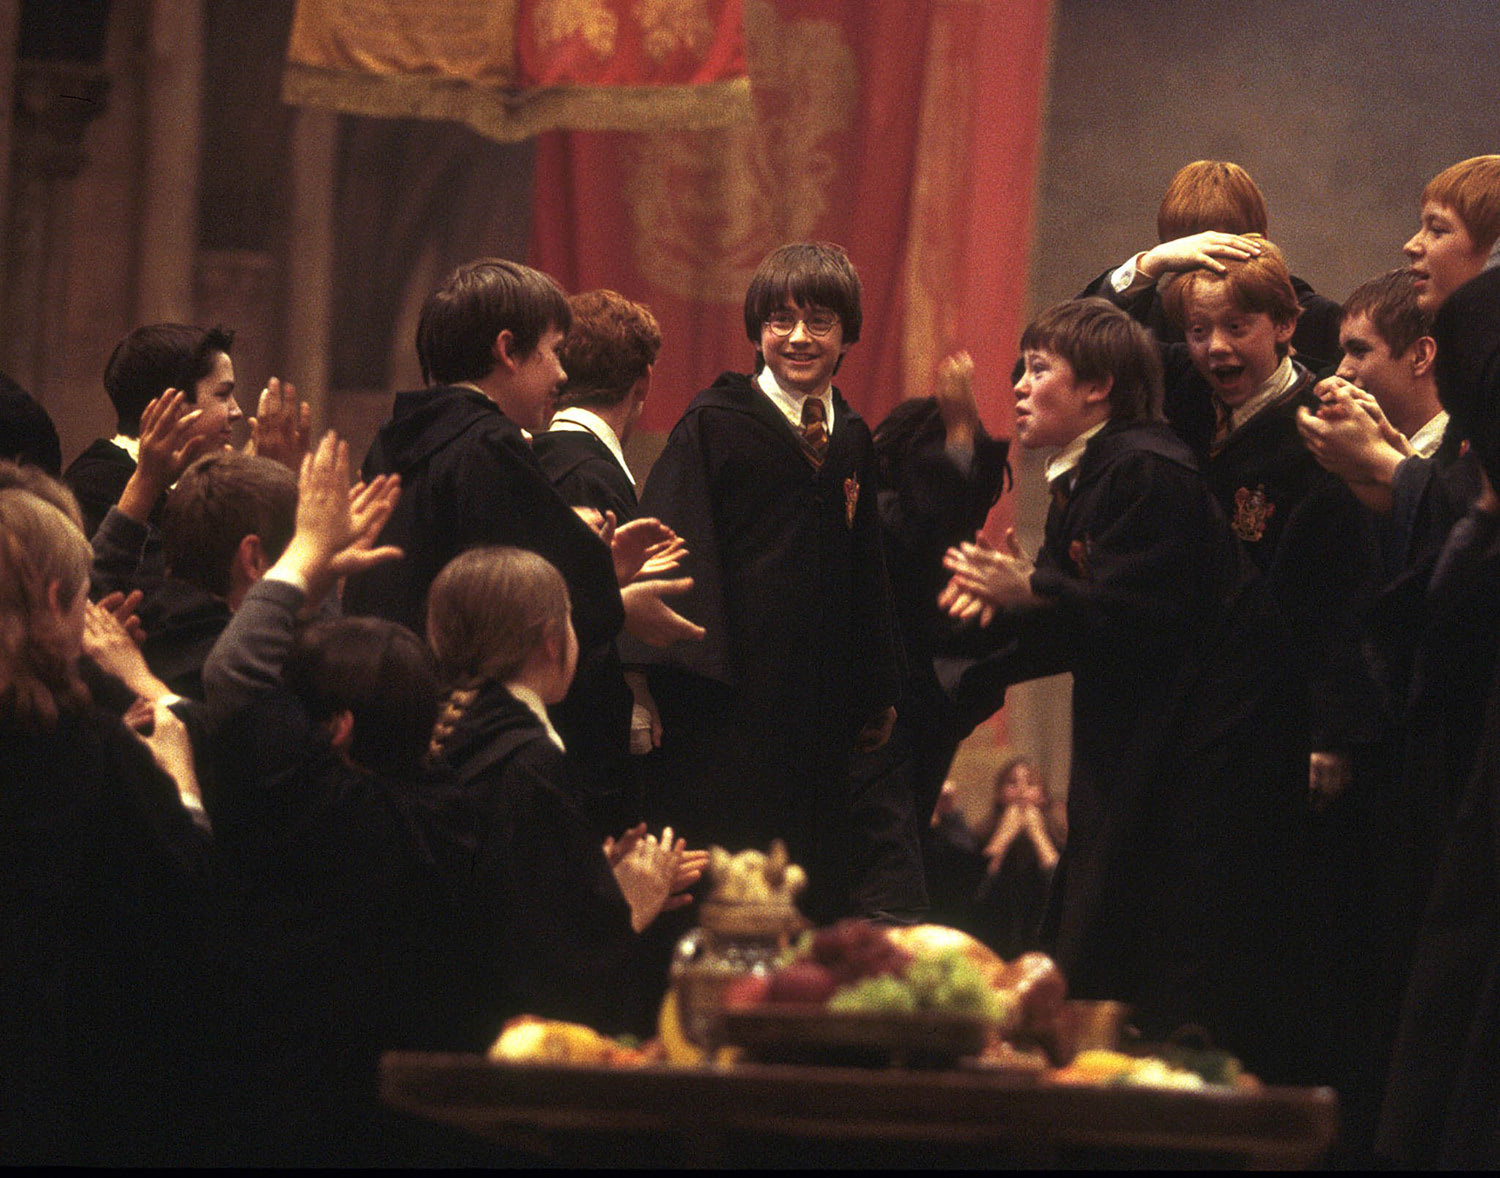 Gryffindor celebrates the House Cup